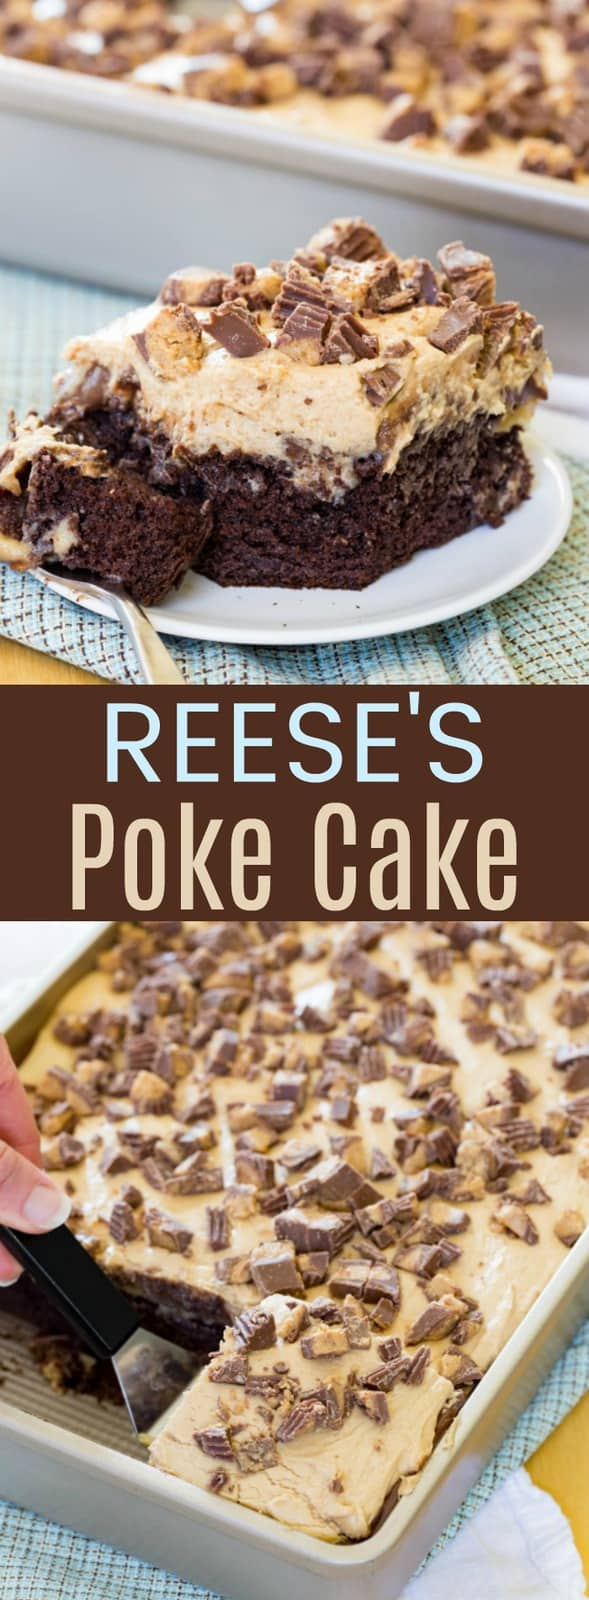 Easy desserts recipes with chocolate